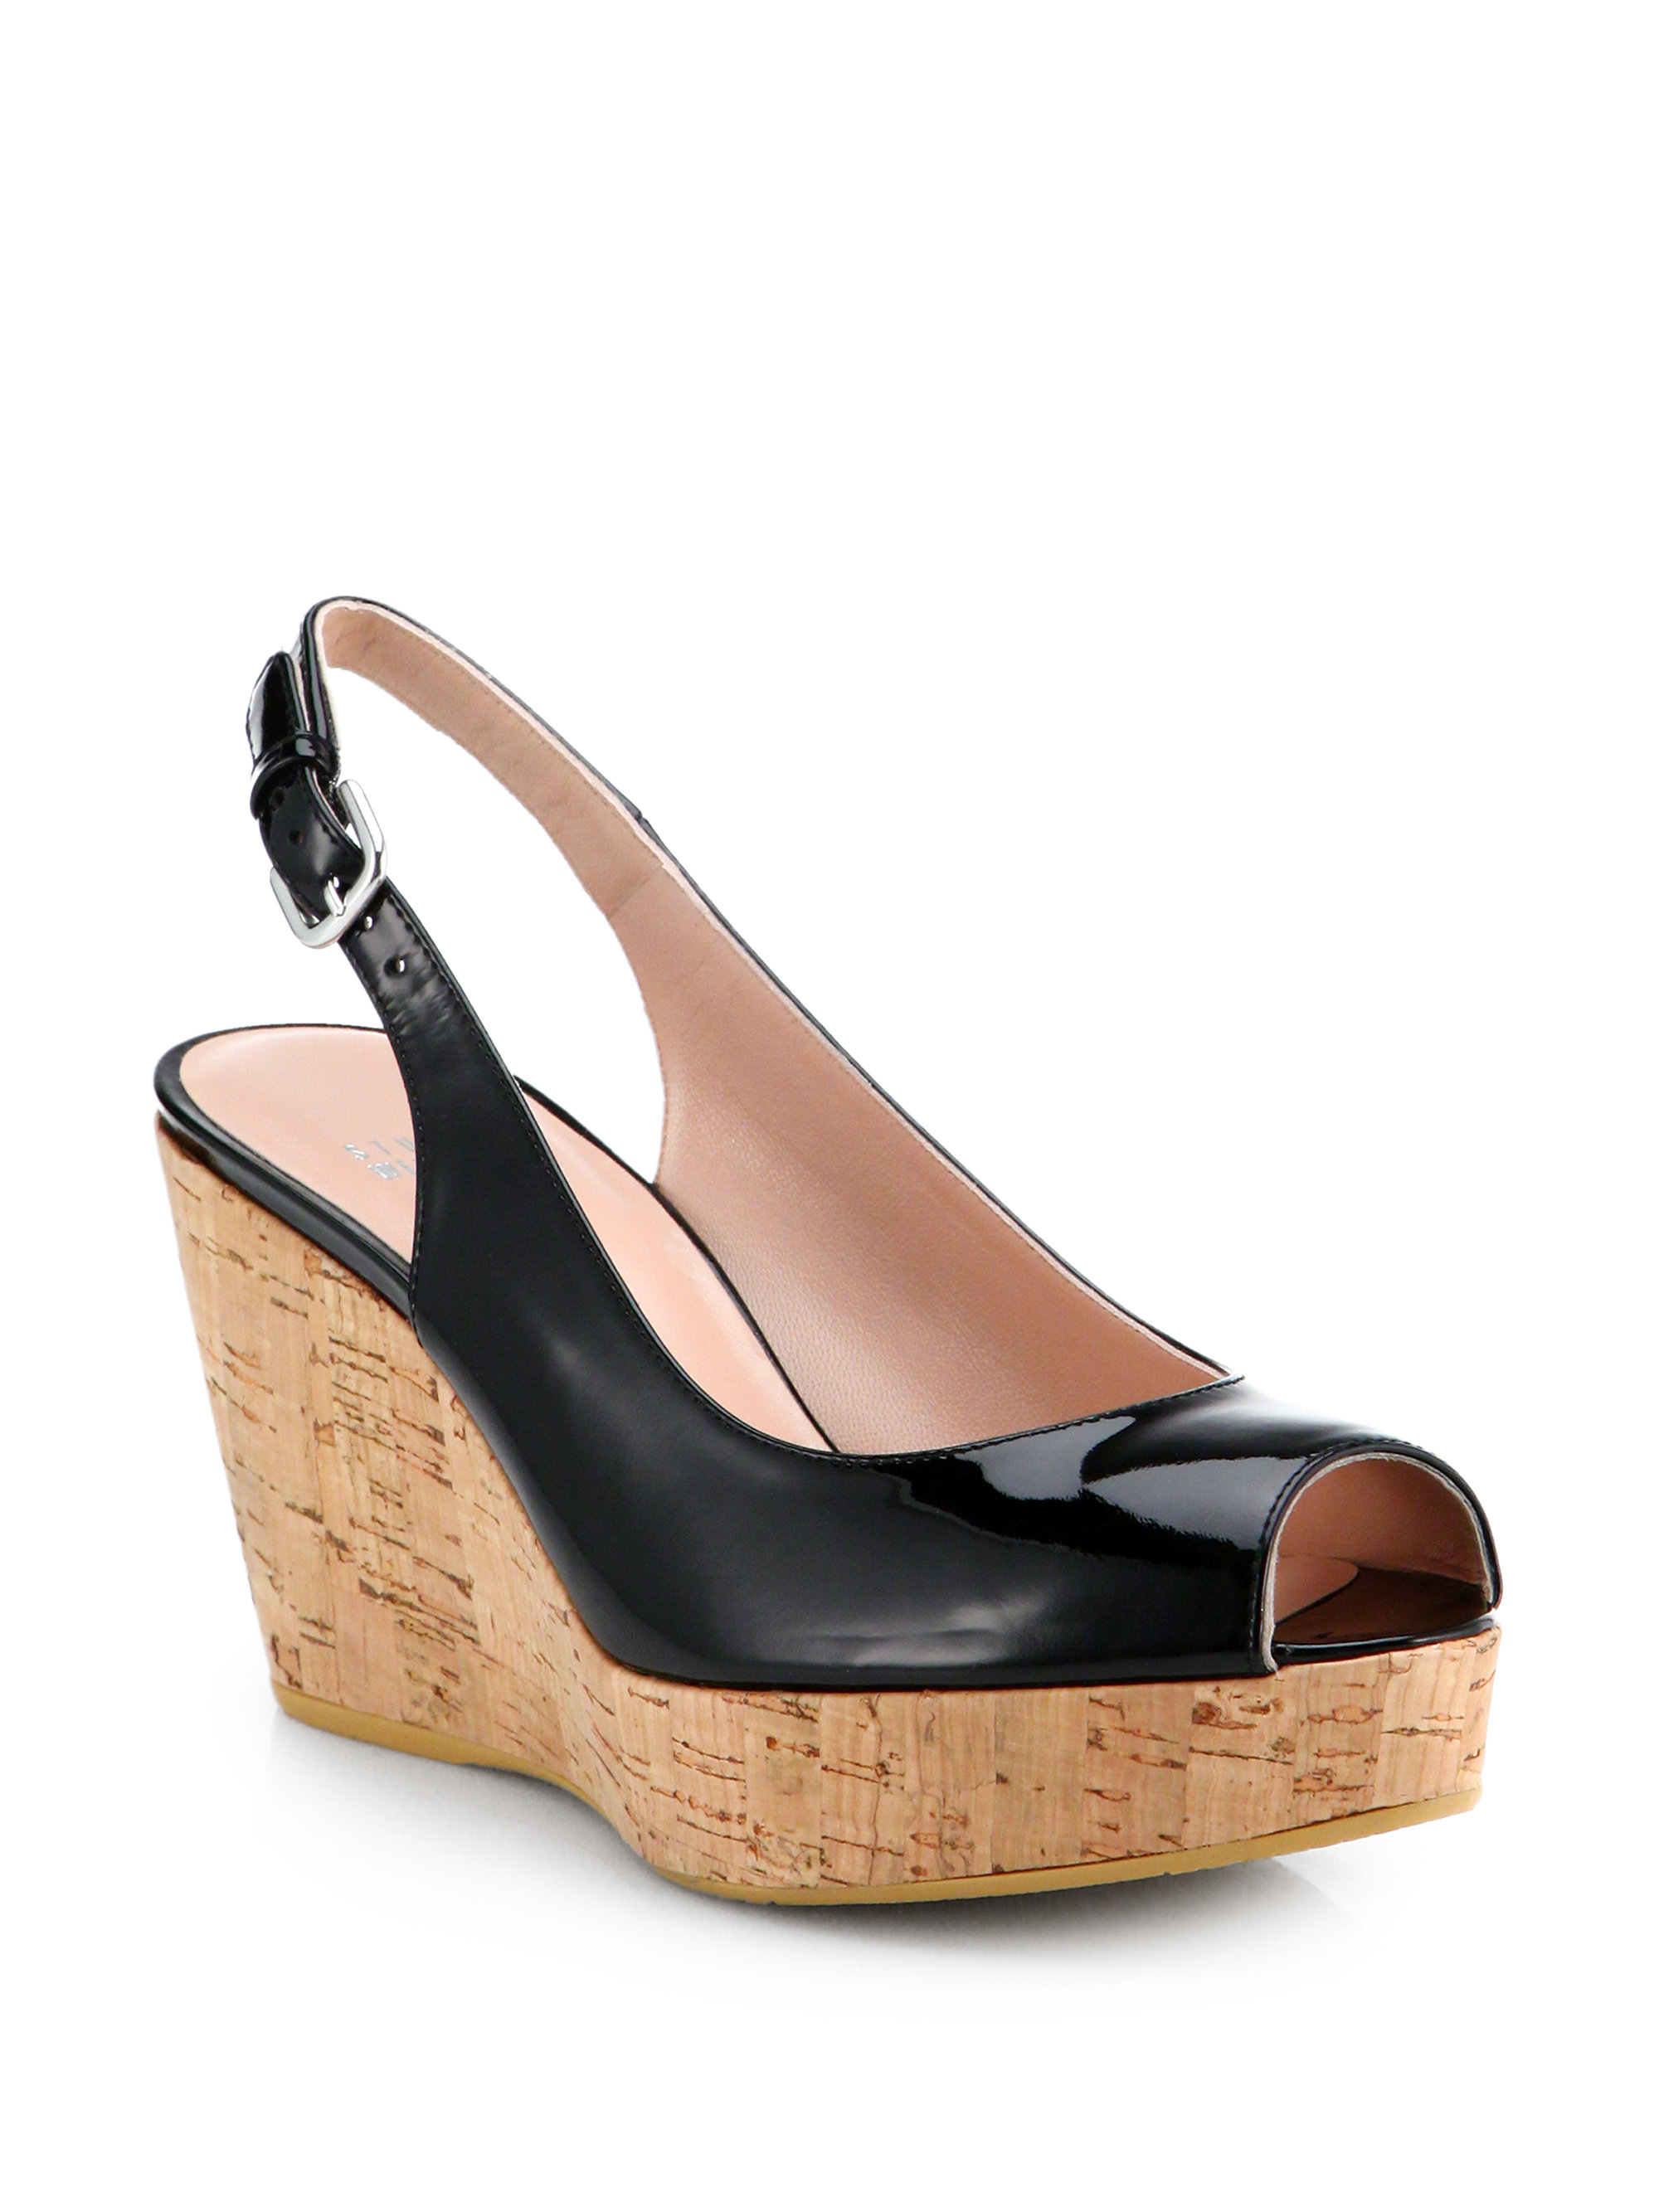 Stuart Weitzman Patent Wedge Sandals outlet shop free shipping factory outlet low shipping fee cheap online cheap lowest price fashion Style cheap price ZzPpKL2z